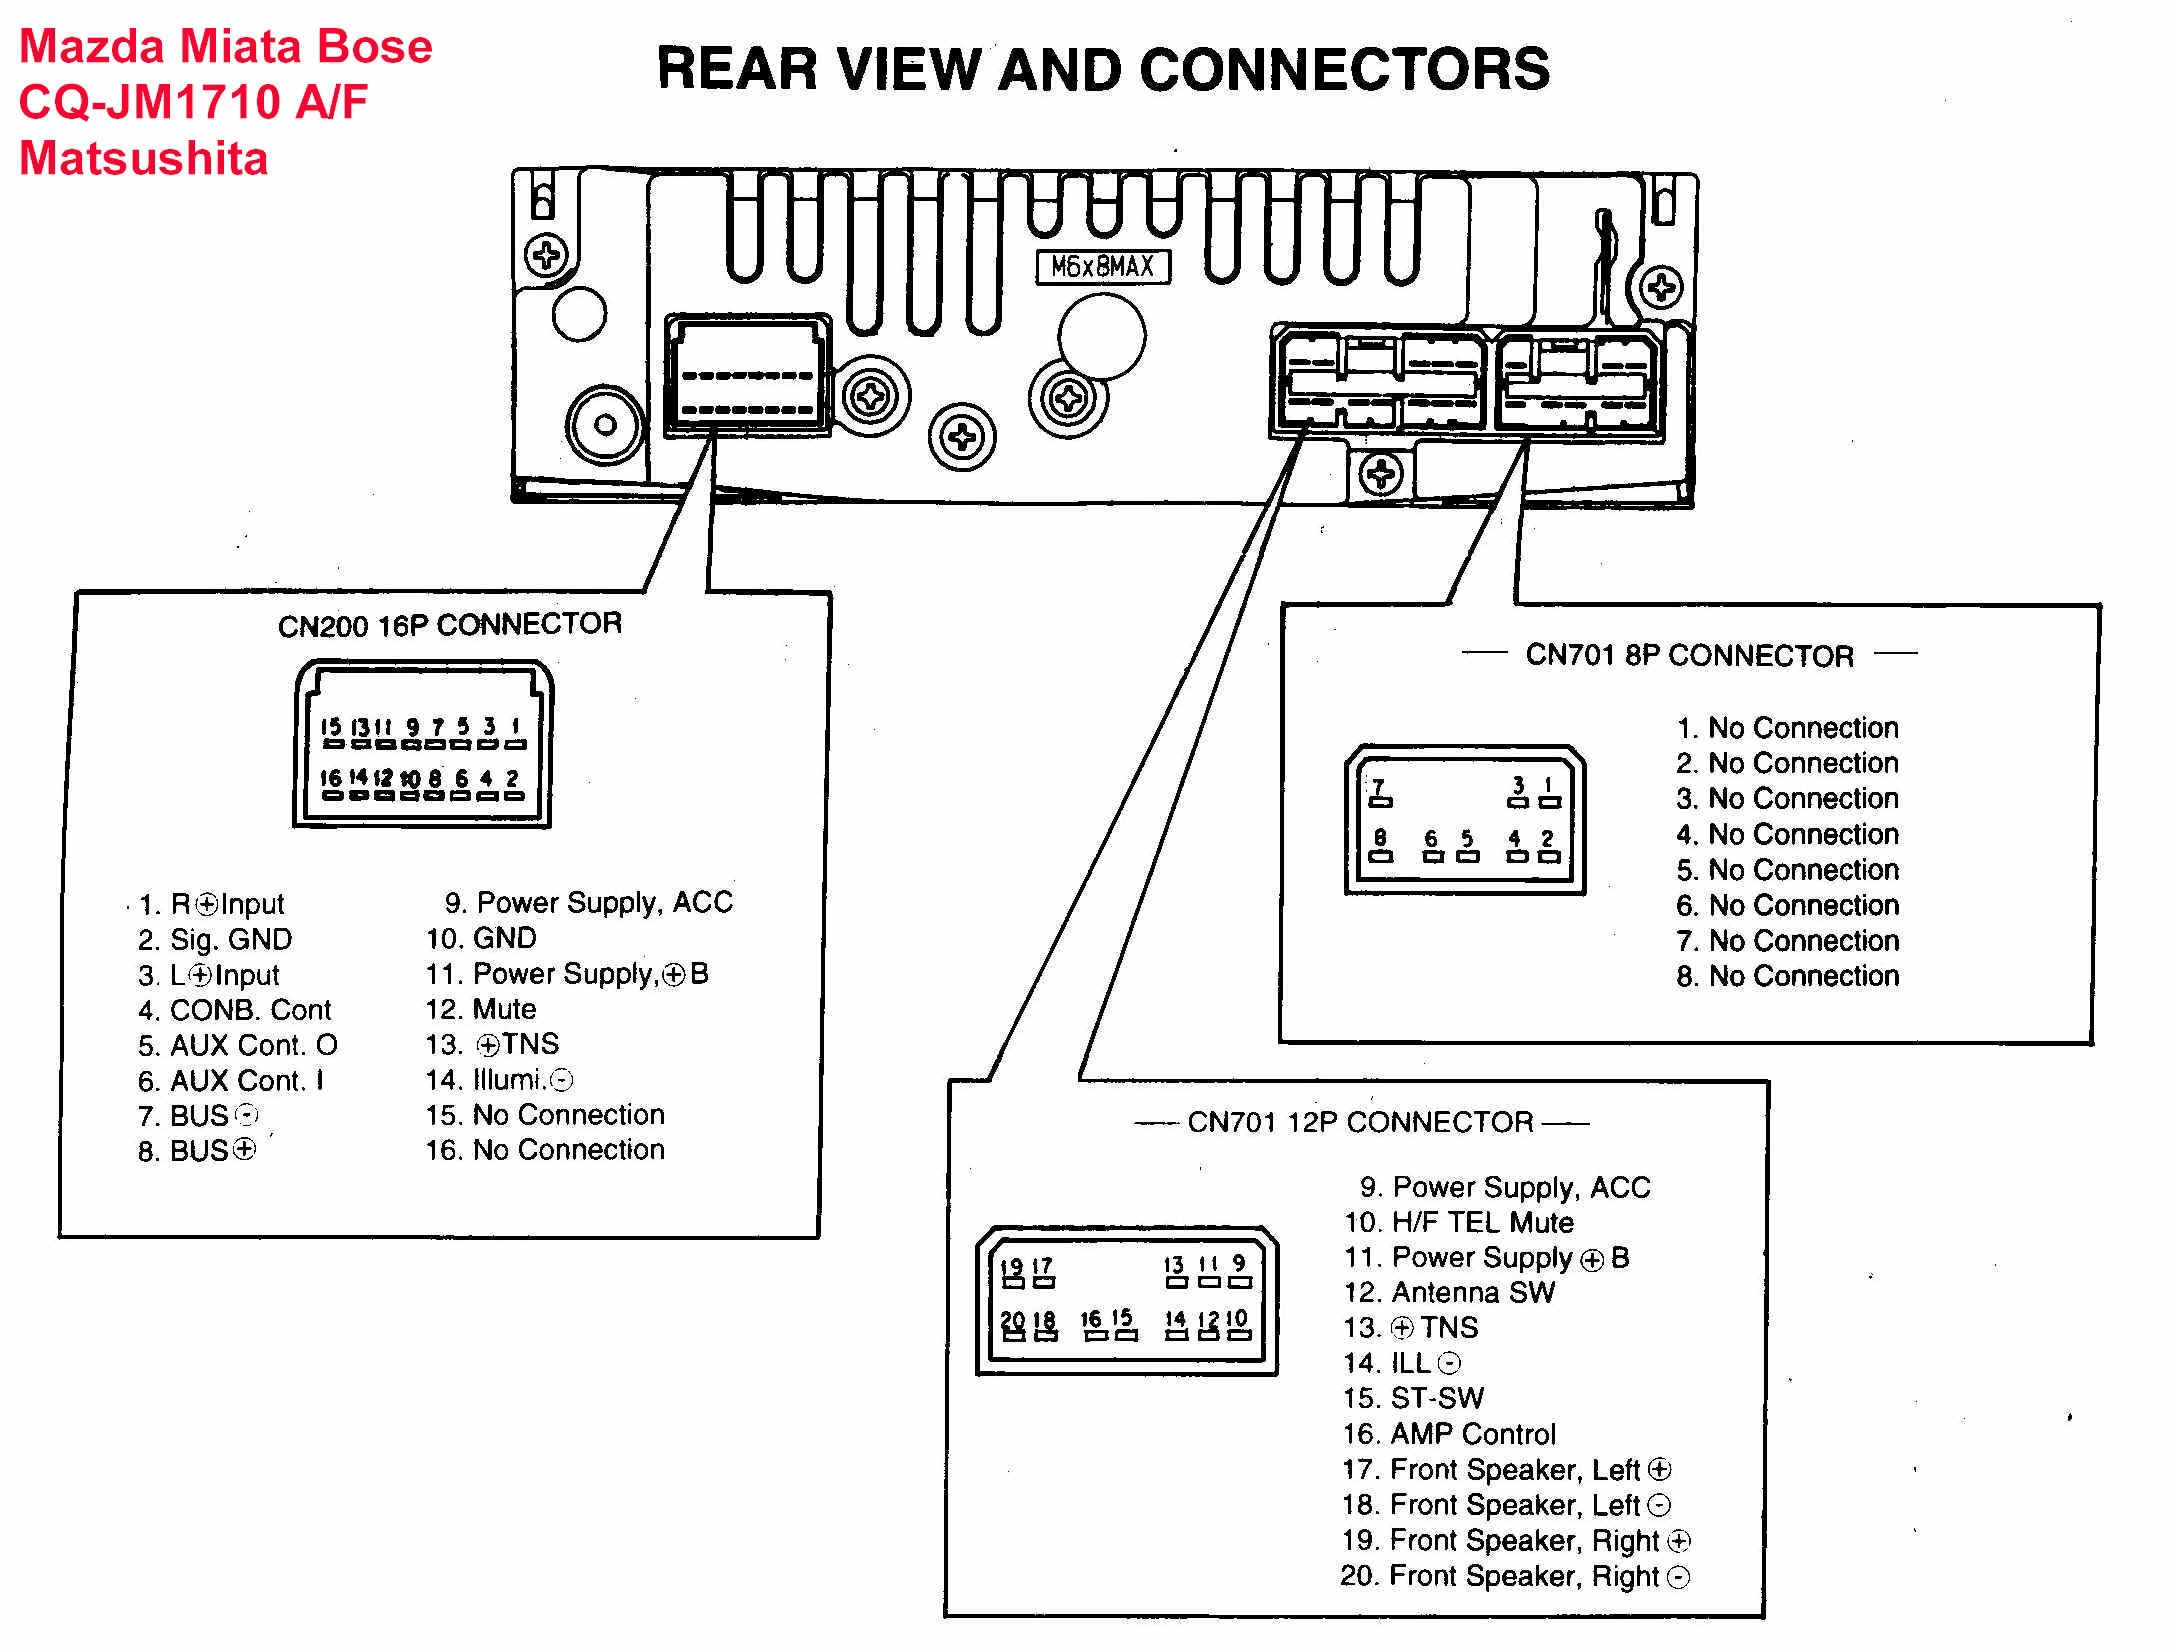 Wiring Diagram Car Audio Car with Detaleted Wiring and Factory Stereo Diagrams Wiring Diagram Of Wiring Diagram Car Audio